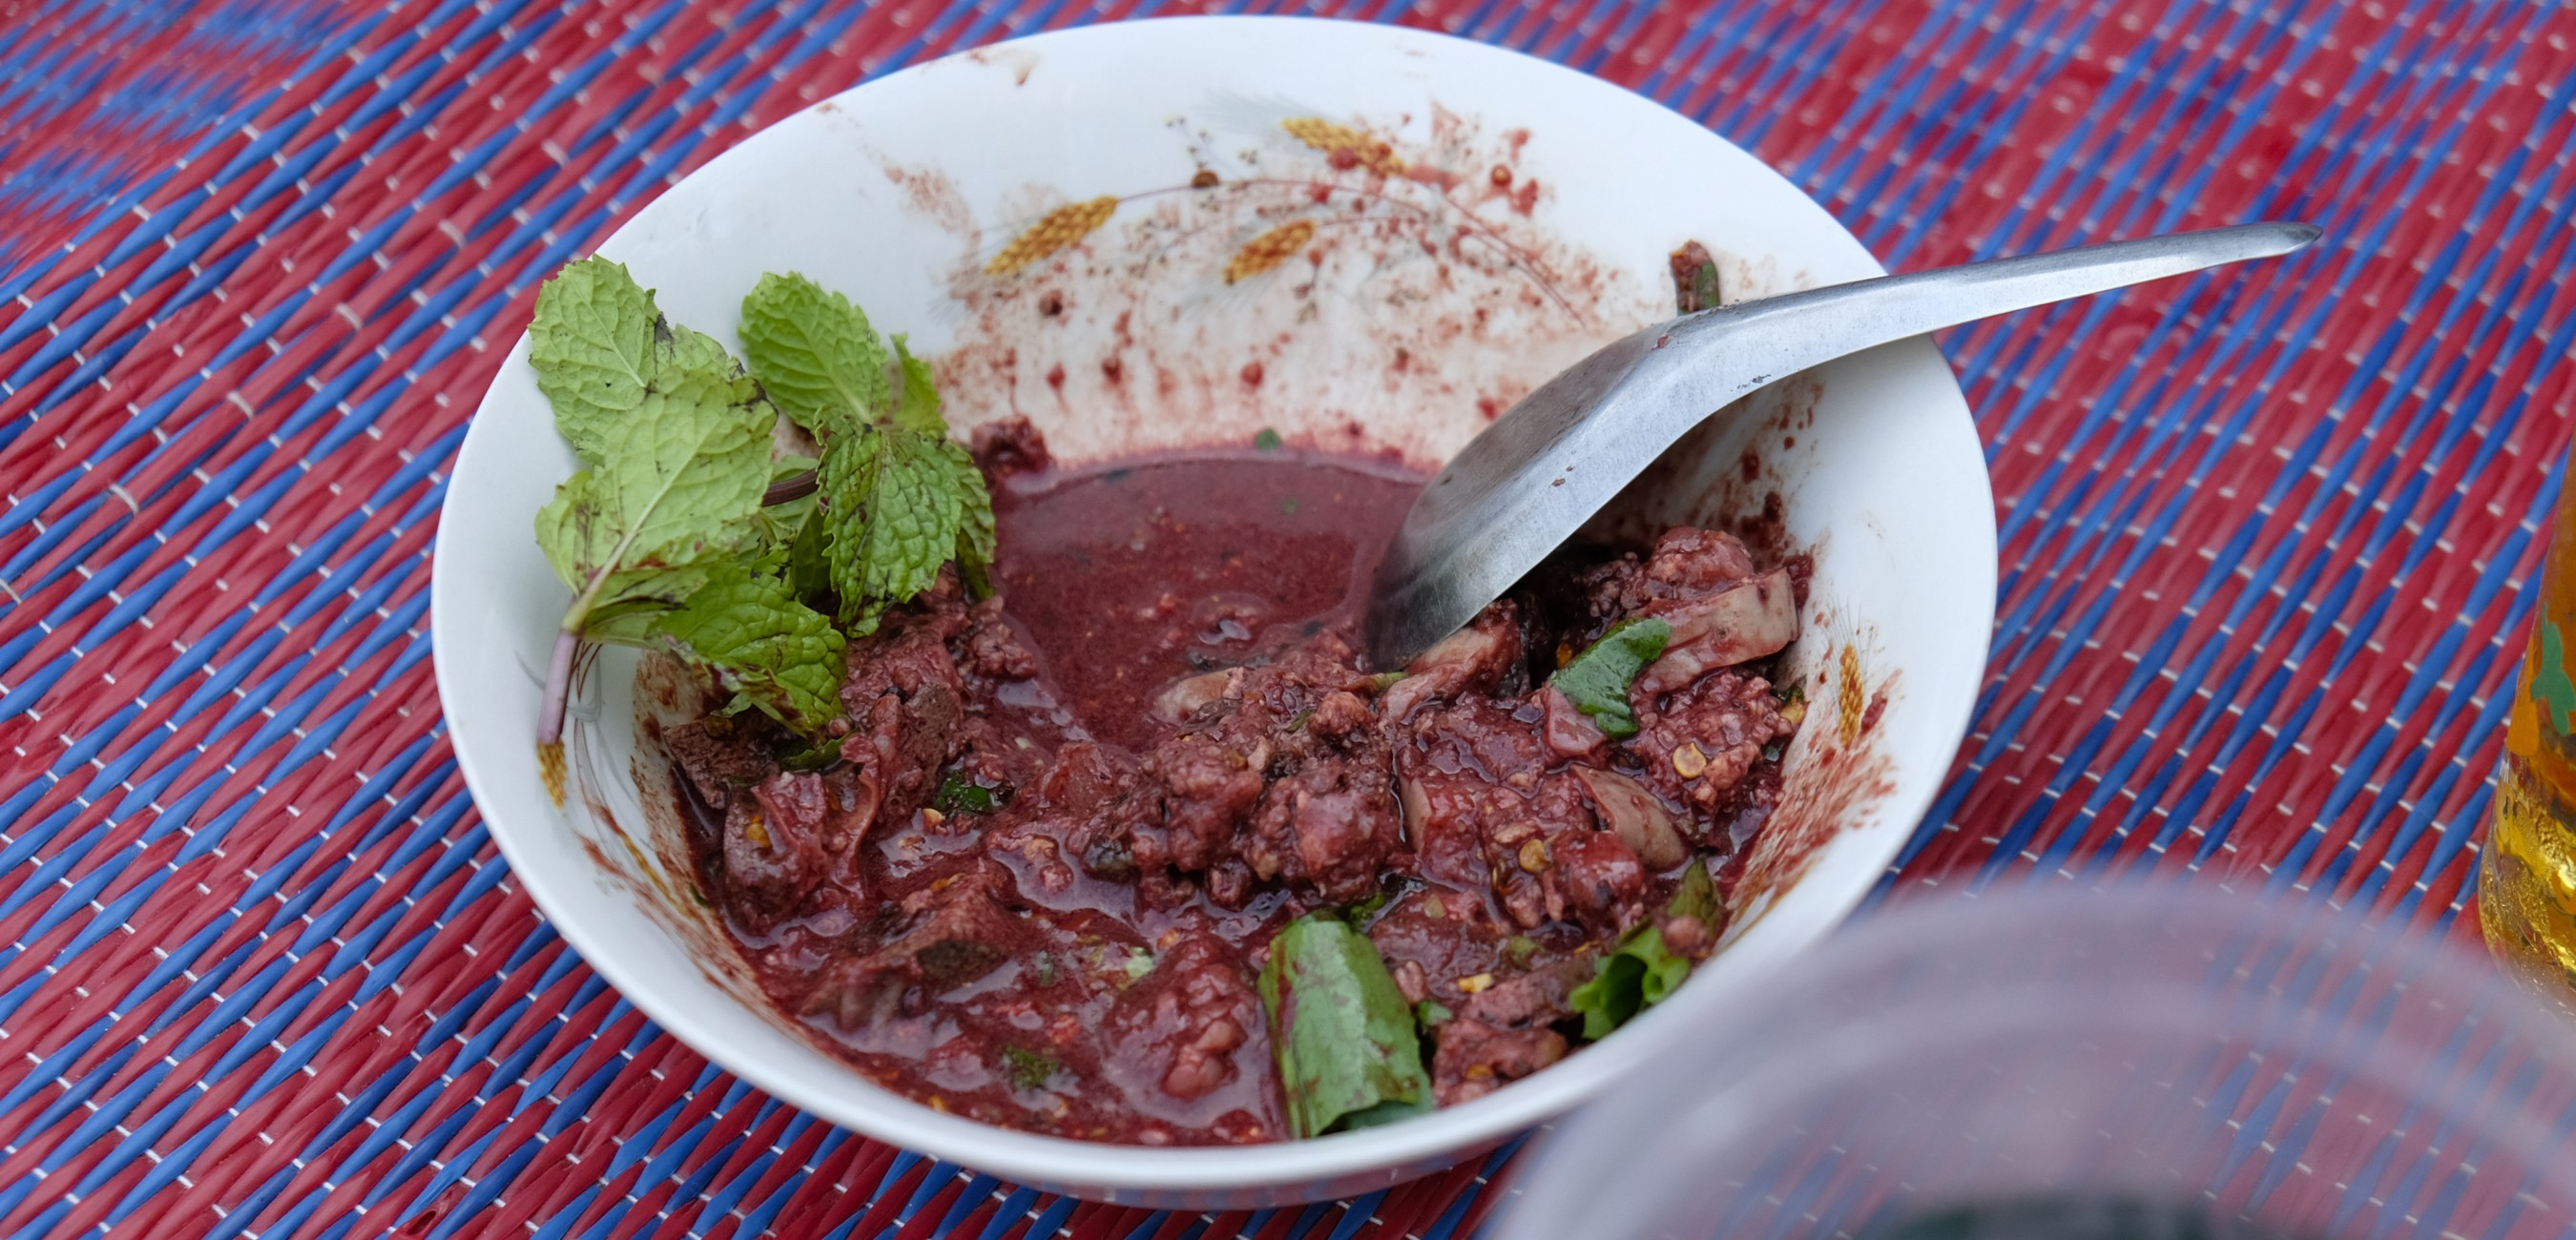 video screenshot for Eating raw pigs' blood soup in Northern Thailand